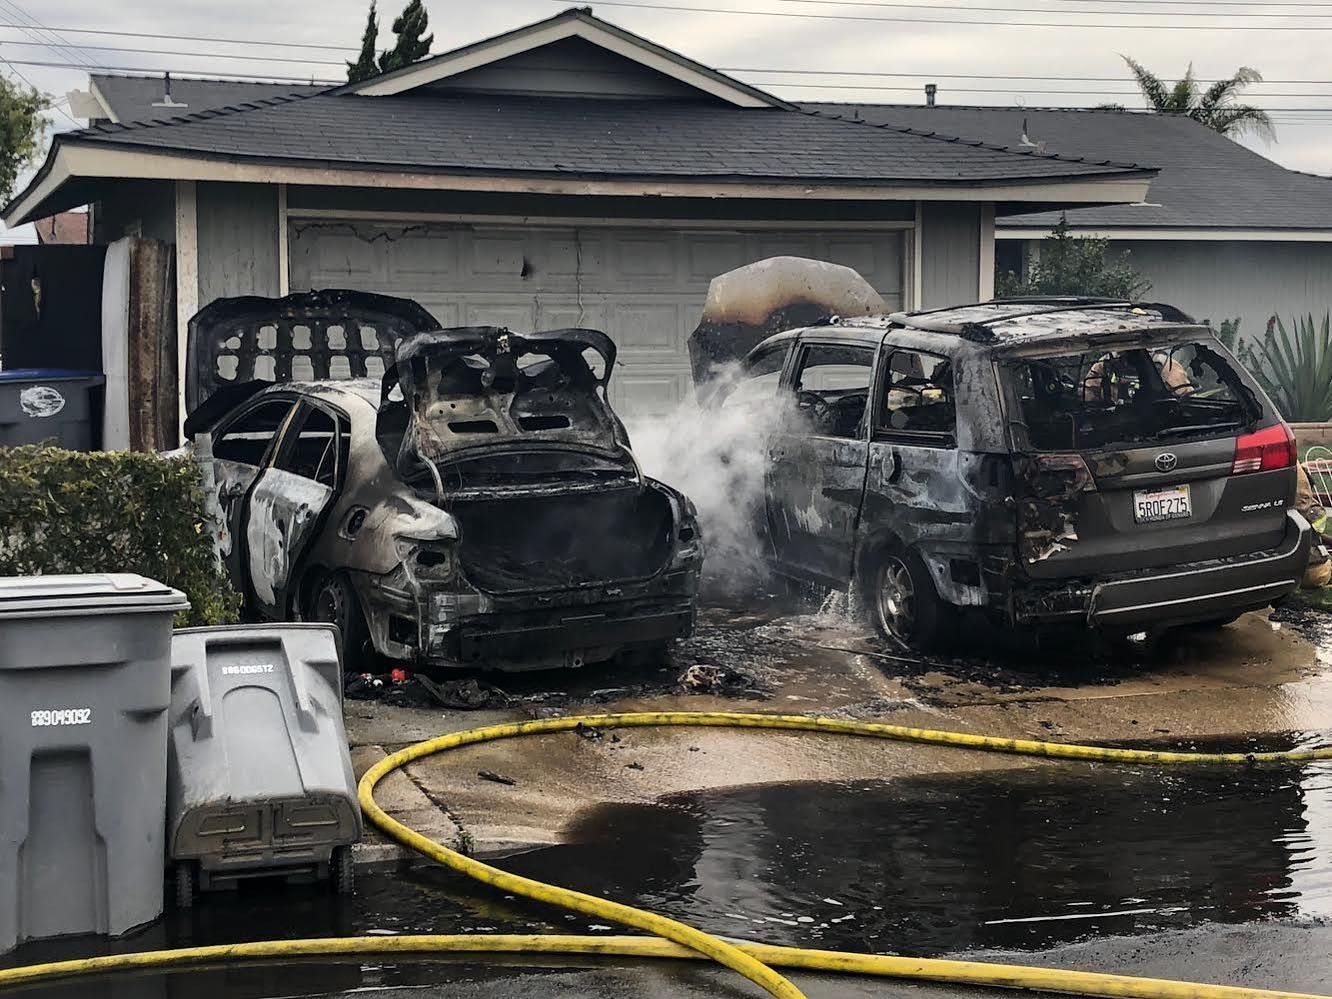 Two vehicles stand gutted outside an Oxnard home on Jan. 20, 2020, in a photo released by the Oxnard Police Department.